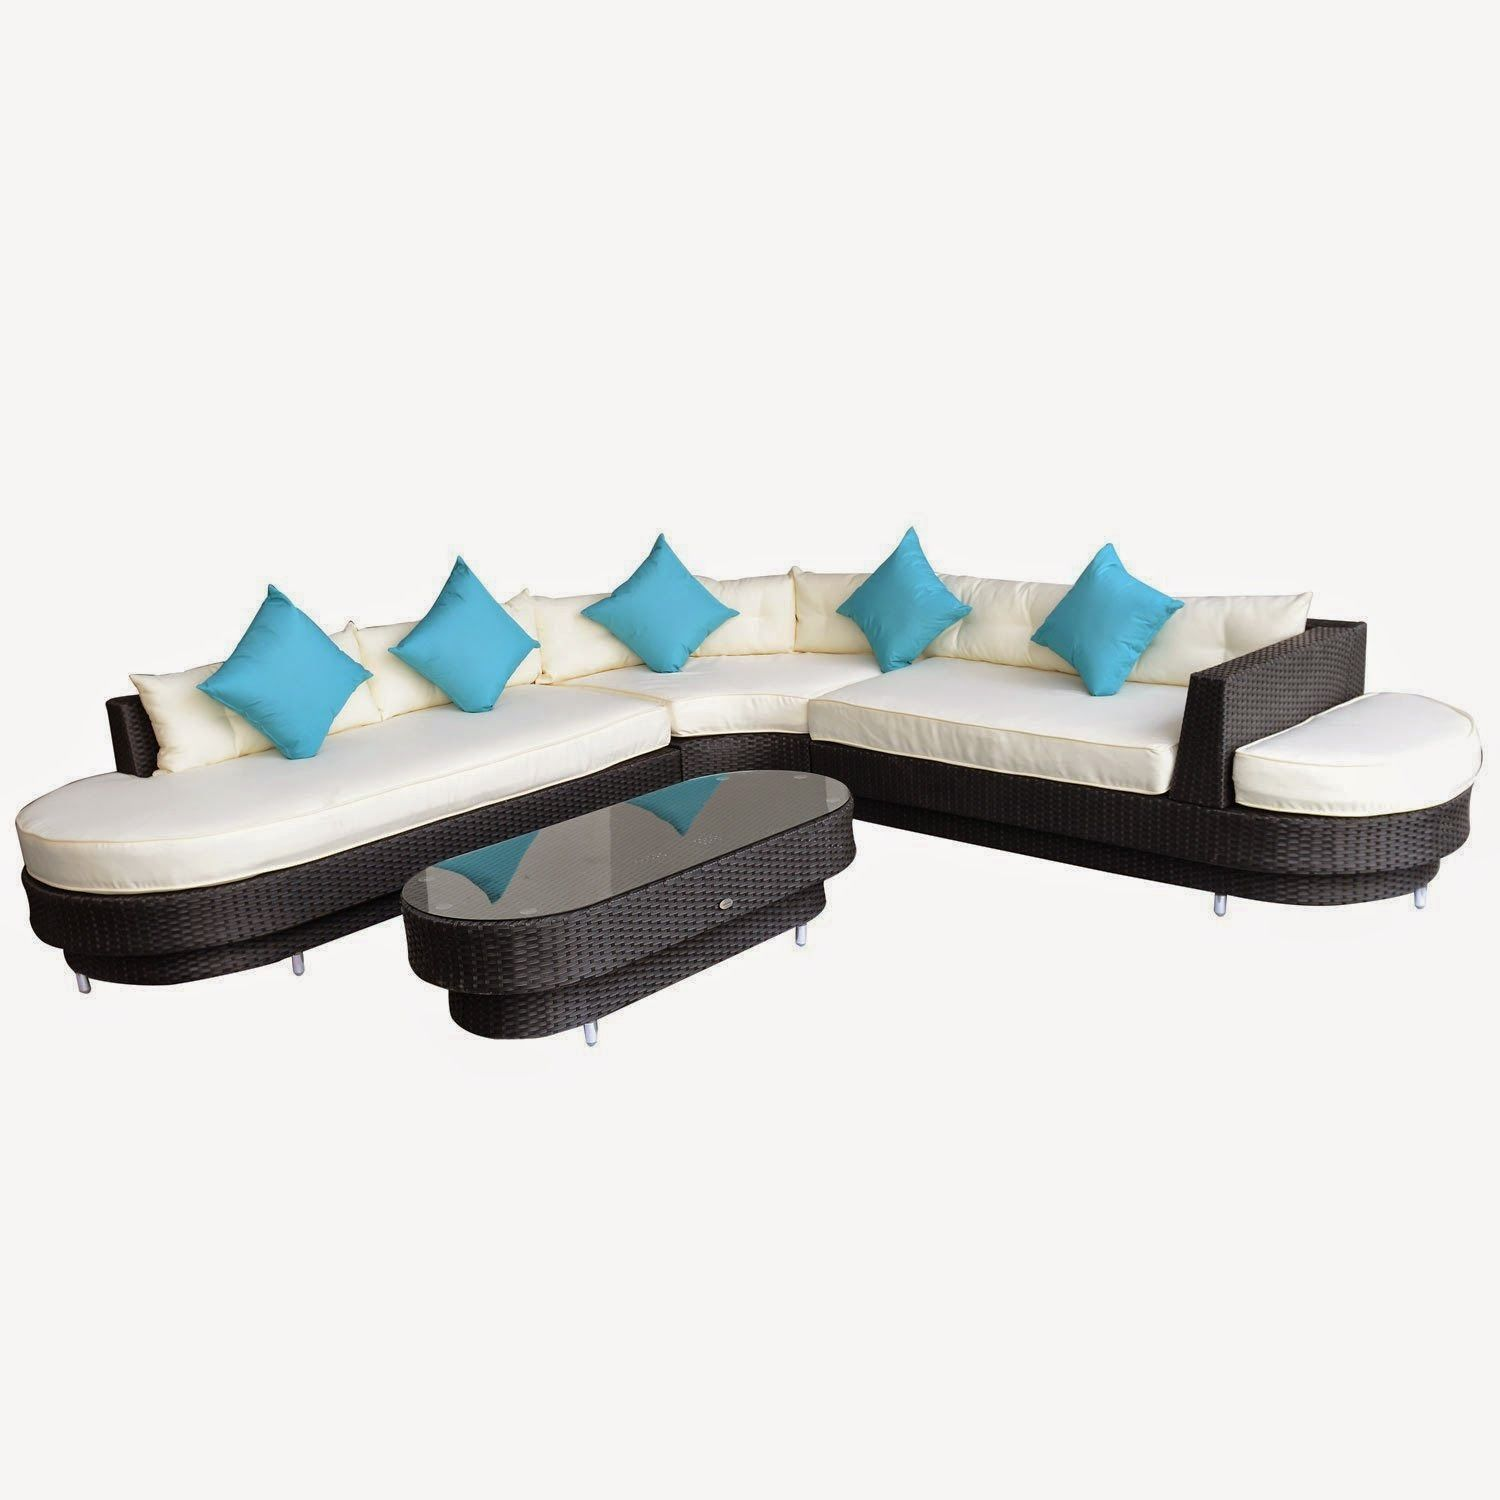 Outsunny 4 Pc Deluxe Outdoor Patio PE Rattan Wicker Oval Sofa Sectional  Furniture Set   Outdoor